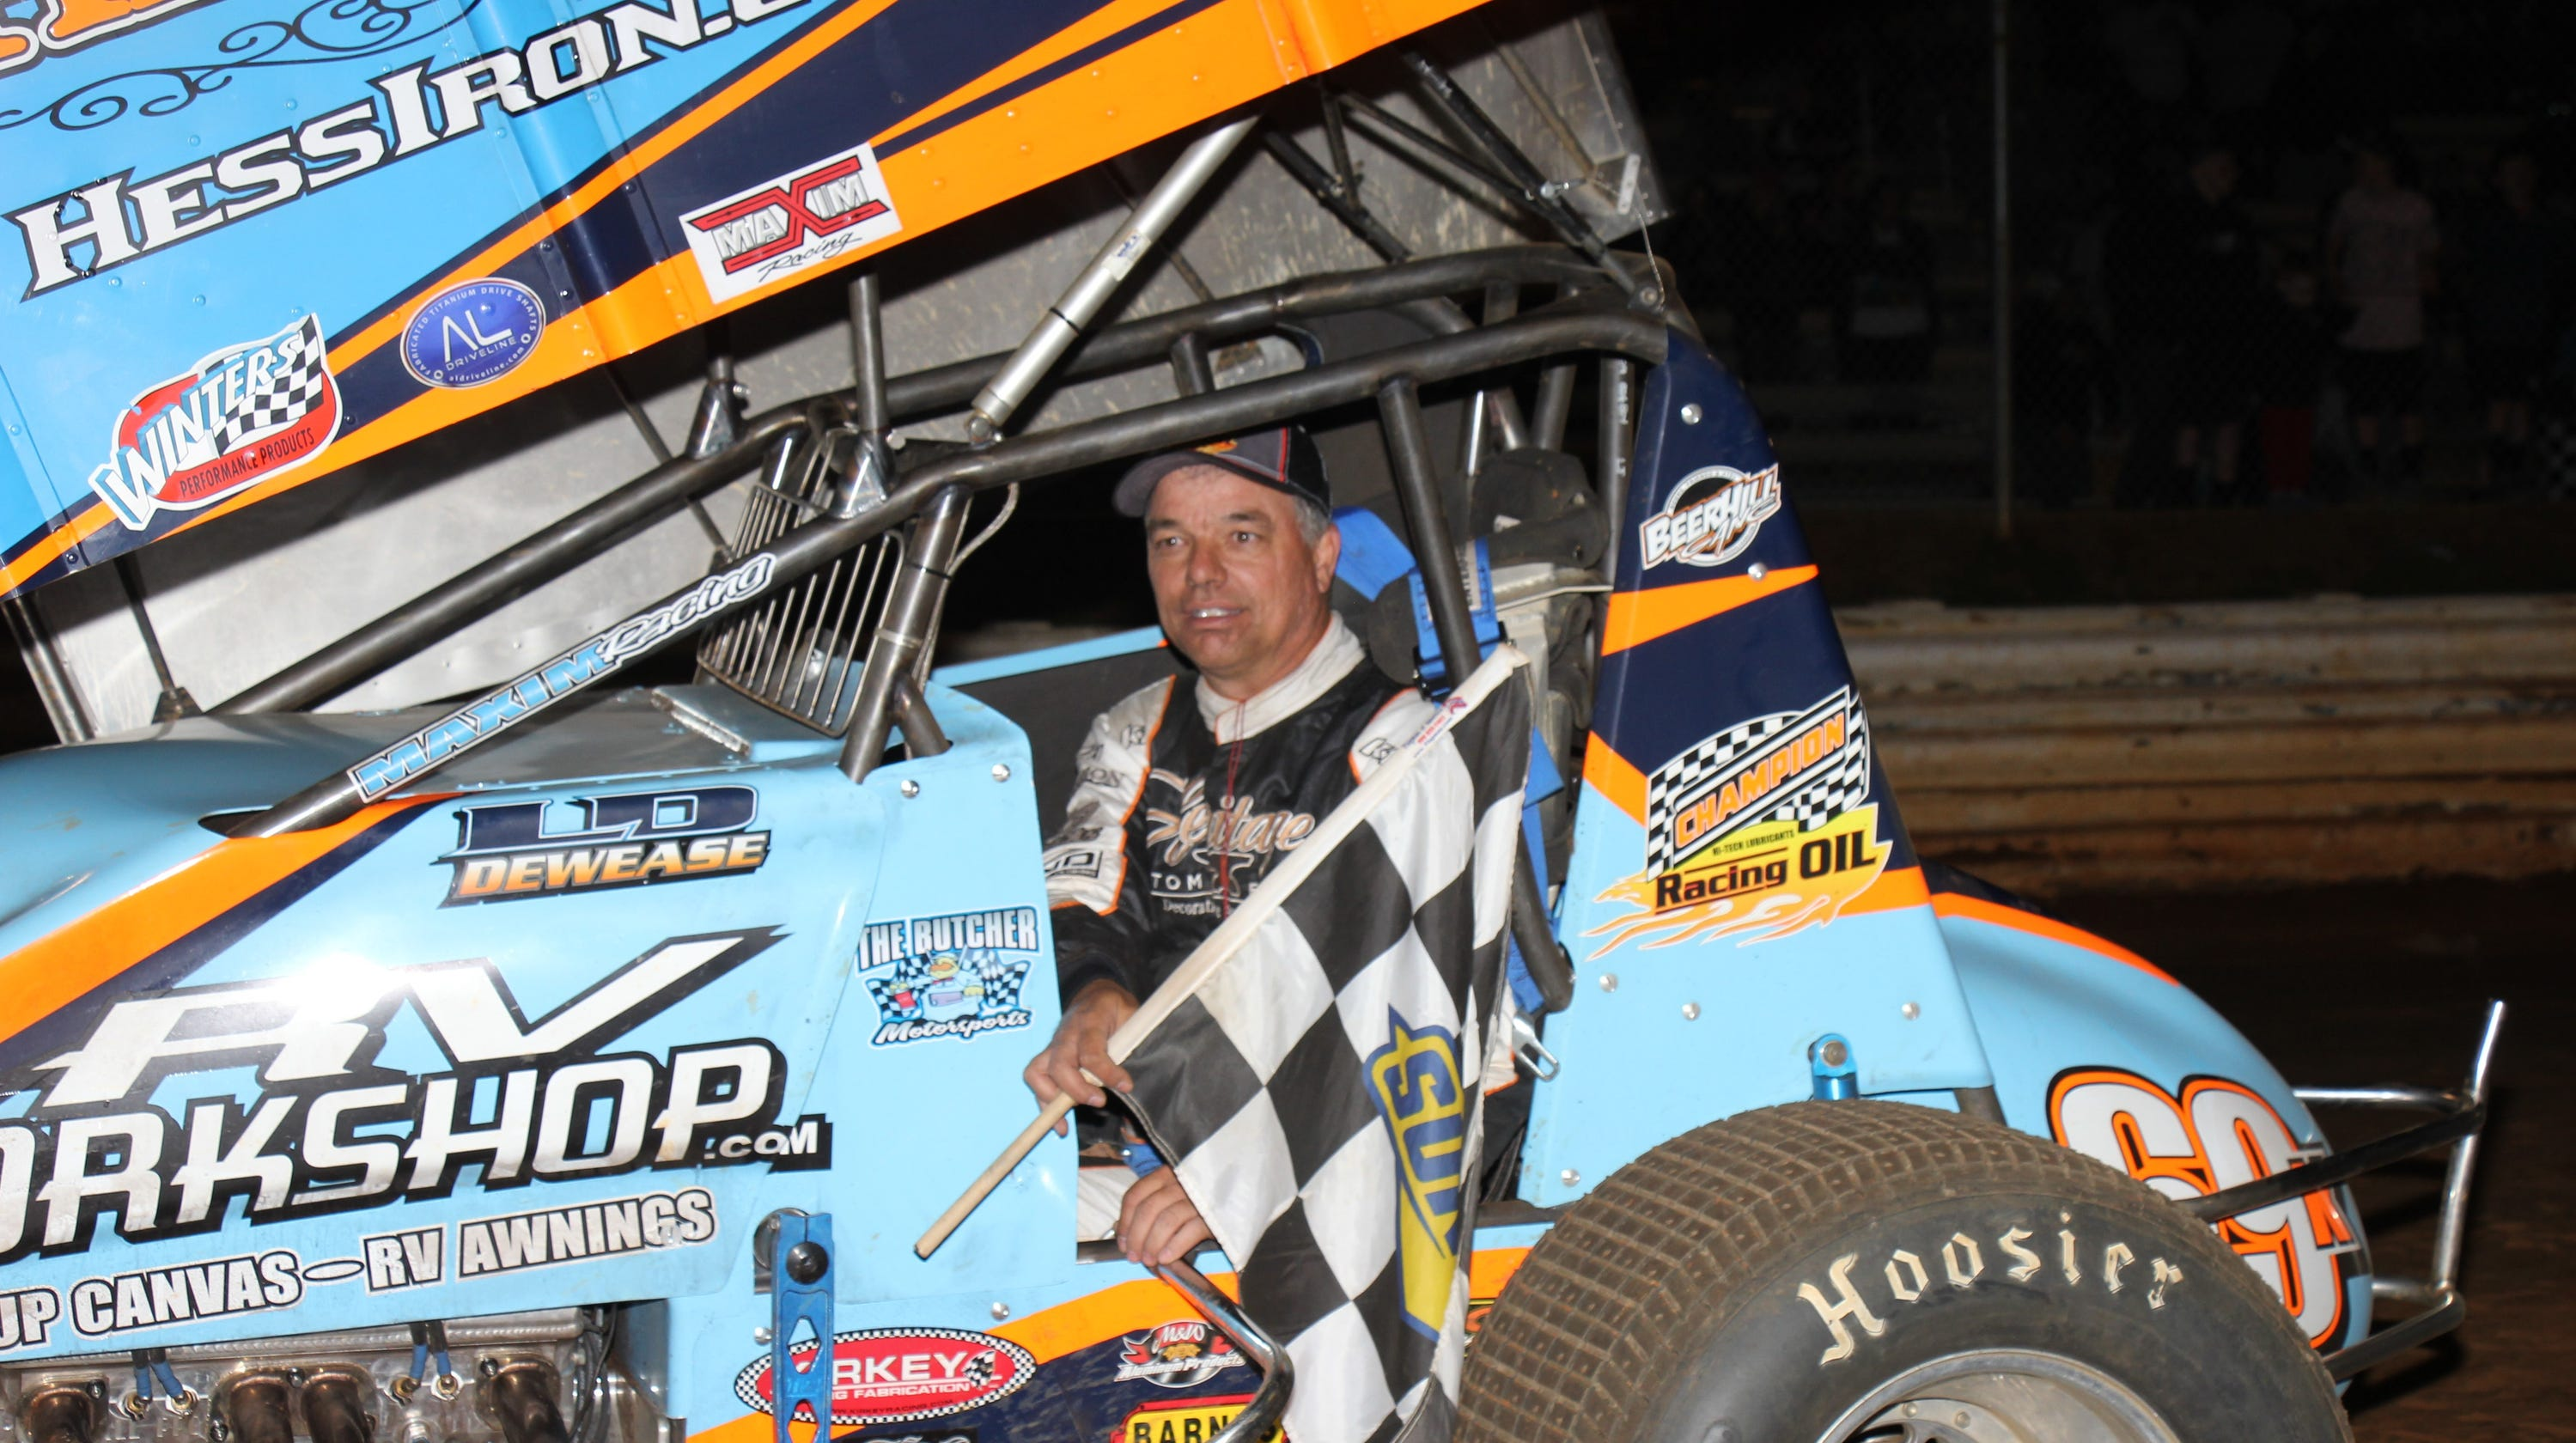 DIRT-TRACK RACING: Dewease Beats Outlaws, Wins $17,000 At